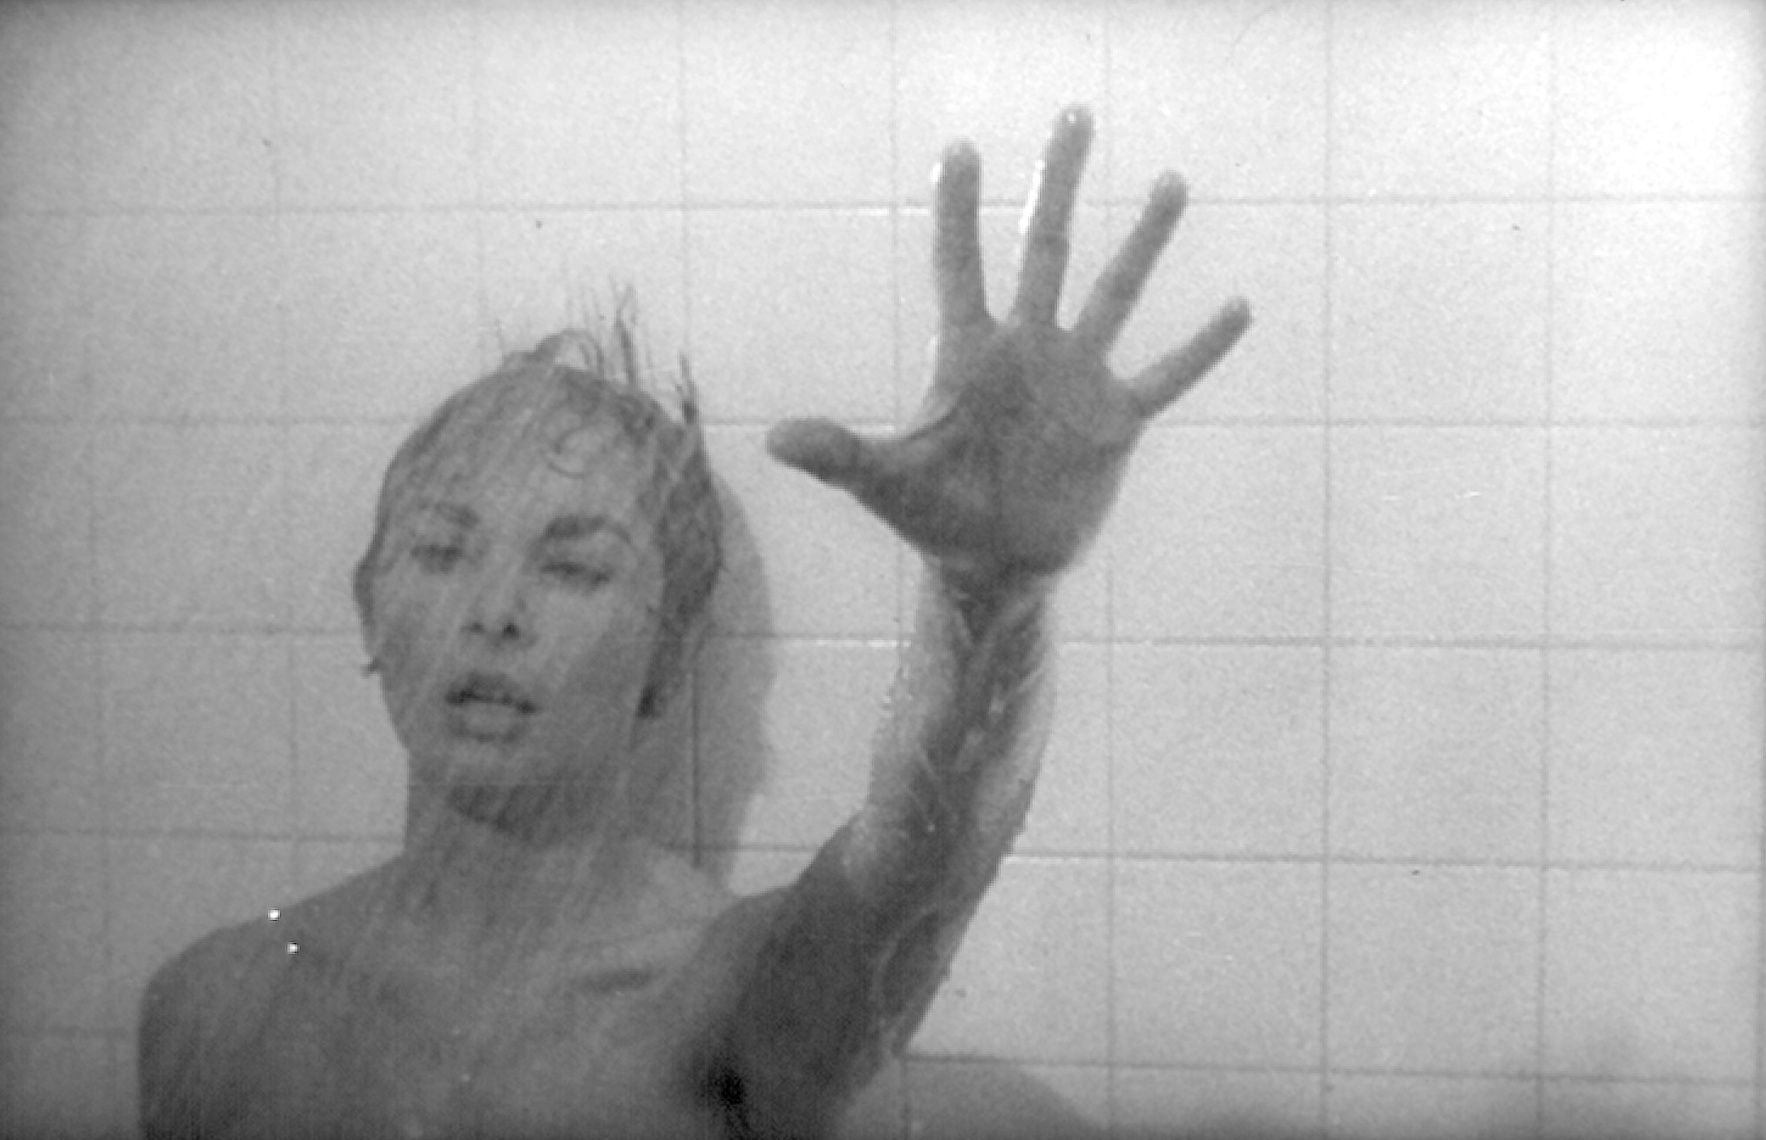 psycho original and remake Alfred hitchcock's psycho is a landmark horror film now our cinefix series, homemade movies, serves up a shot-for-shot remake of the movie's climactic scene using cheap, homemade effects.